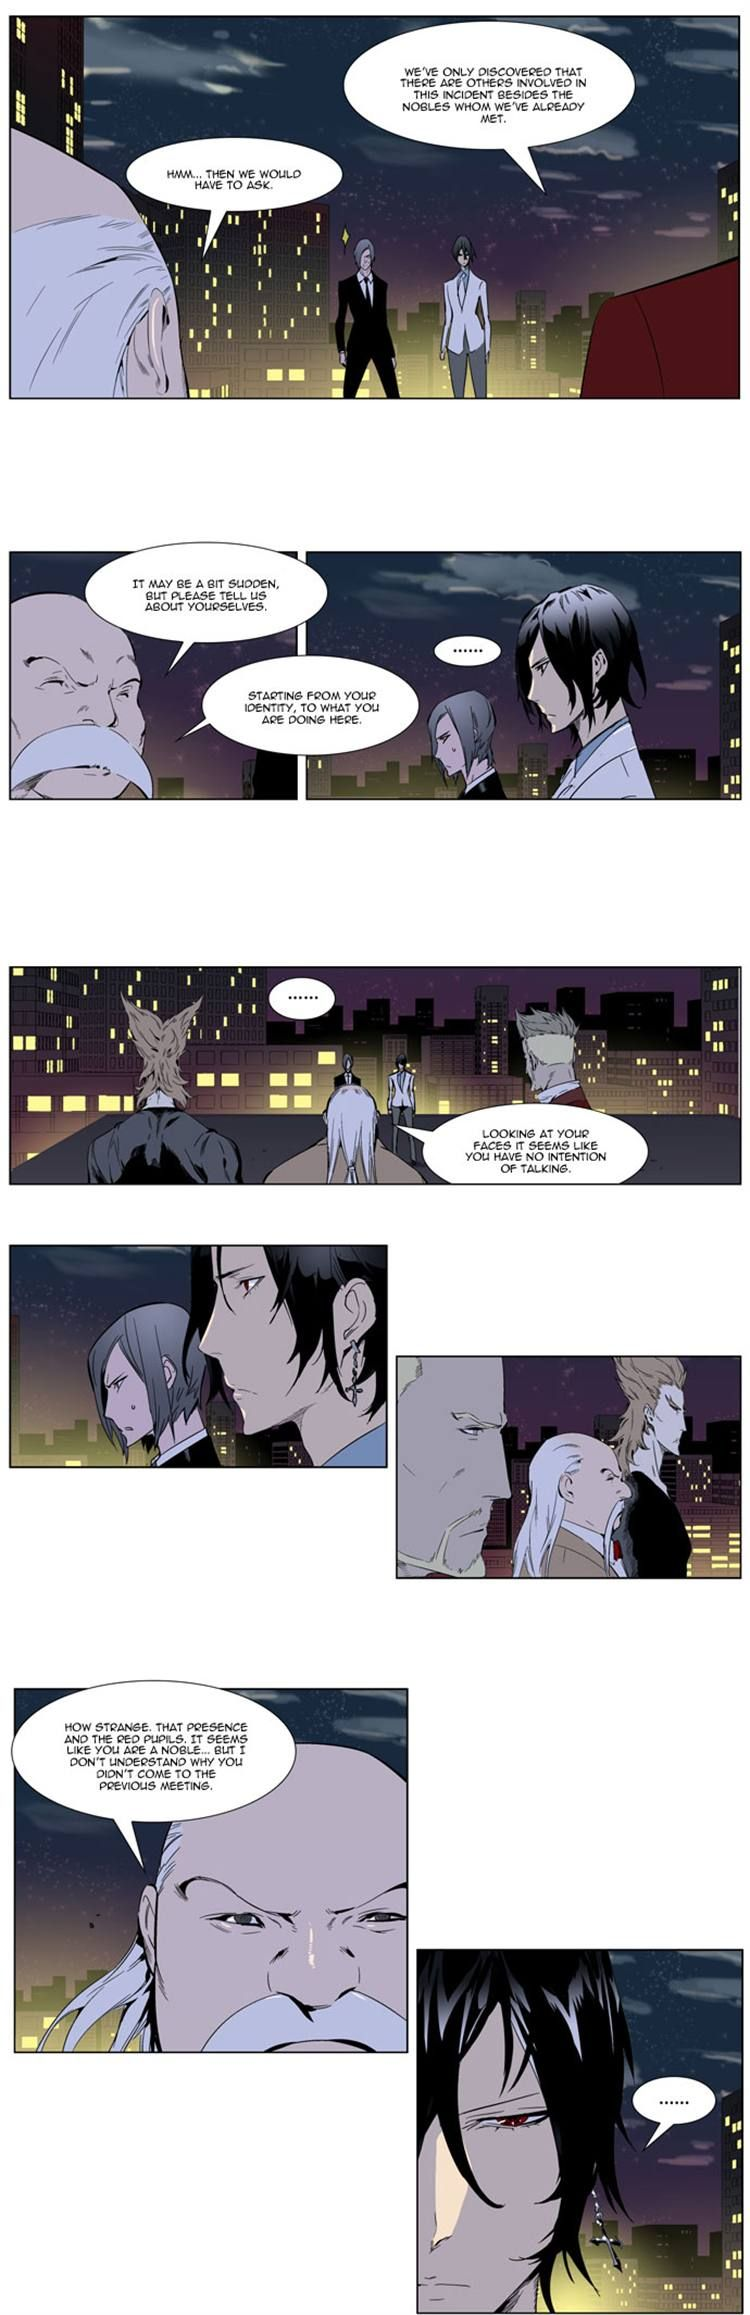 Noblesse 256 Page 3